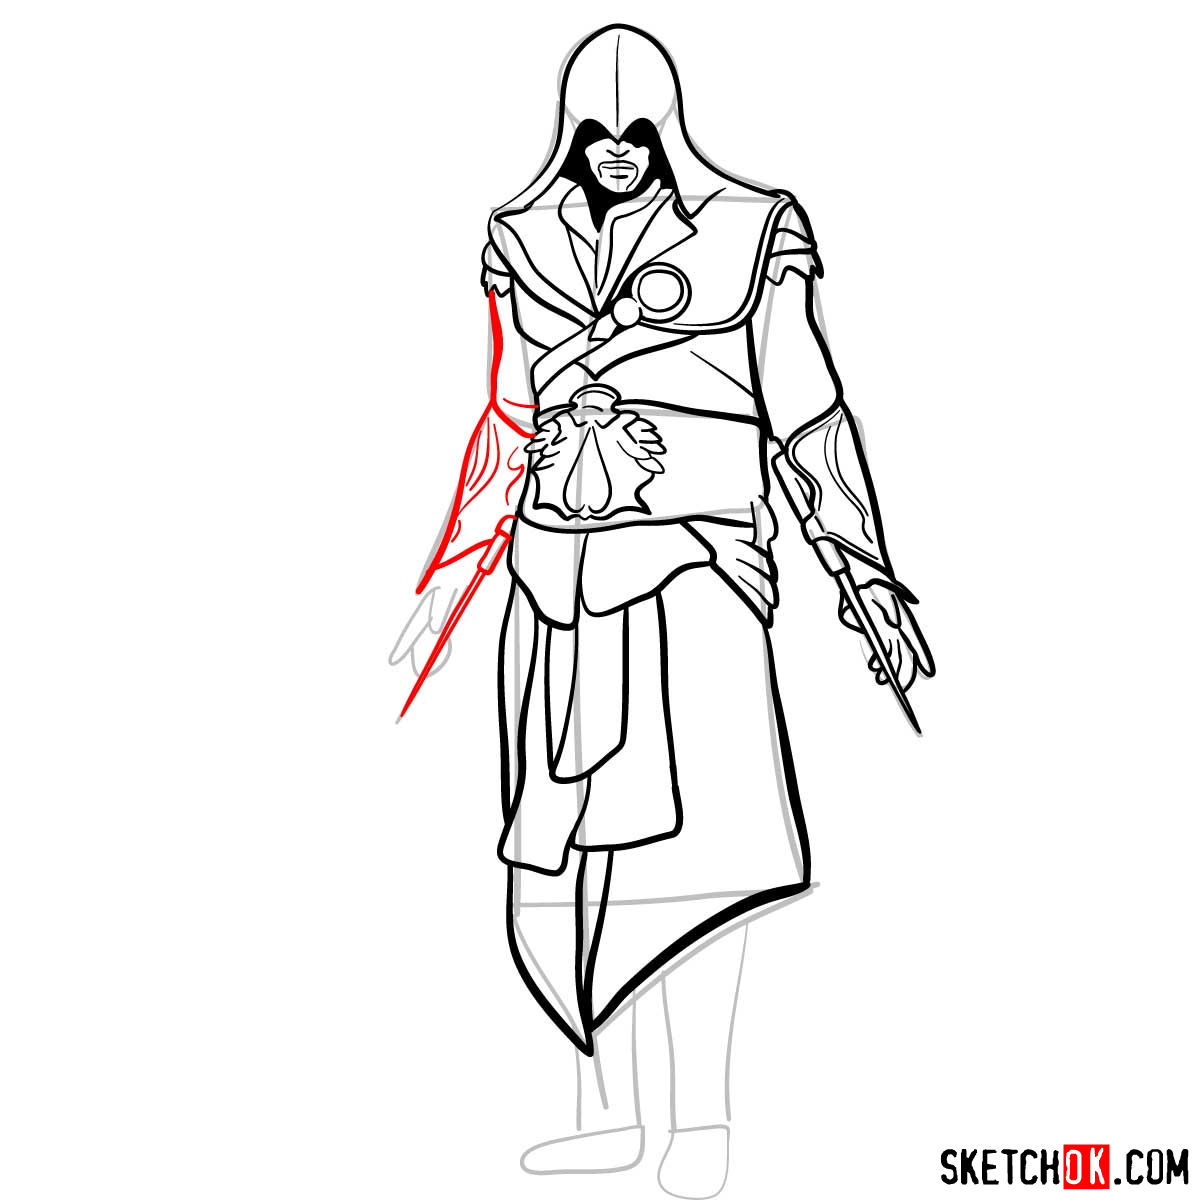 How to draw an Assassin from Assassin's Creed game - step 14